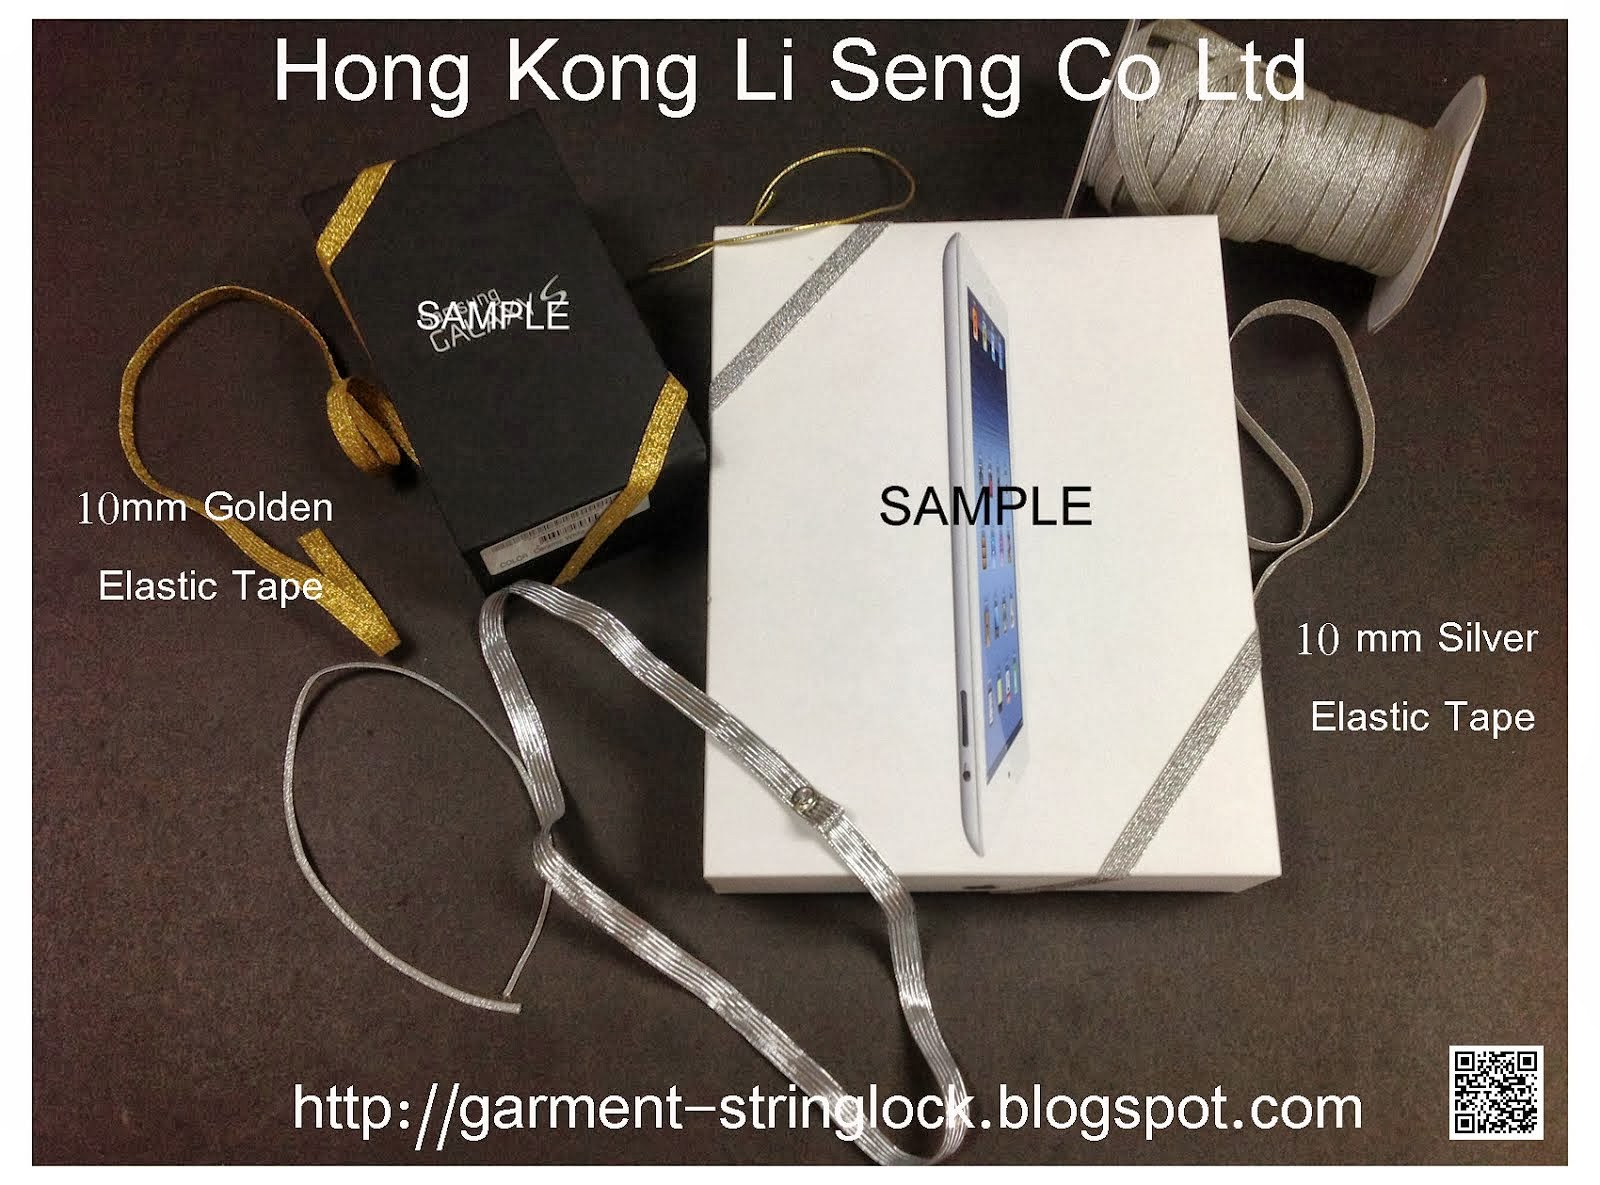 Gift Packing Elastic Tape Ribbon Bow Manufacturer Wholesale Supplier Hong Kong Li Seng Co Ltd